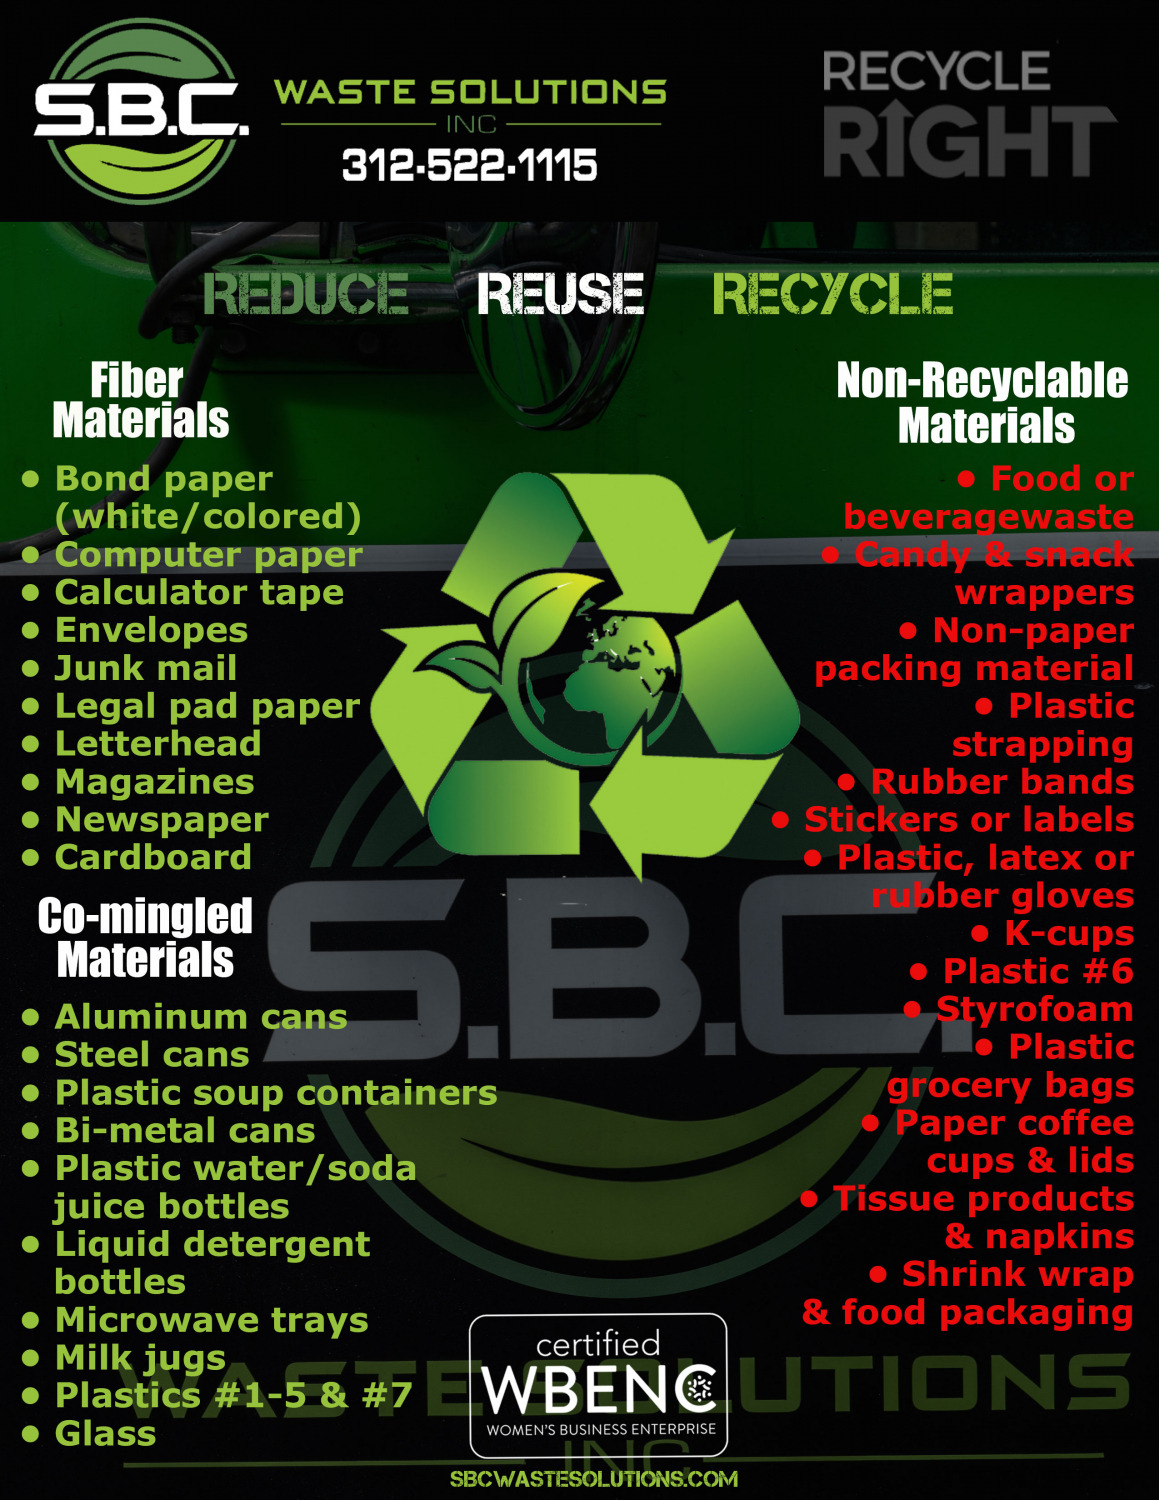 These are the recycling guidelines for SBC Waste Solutions in Chicago